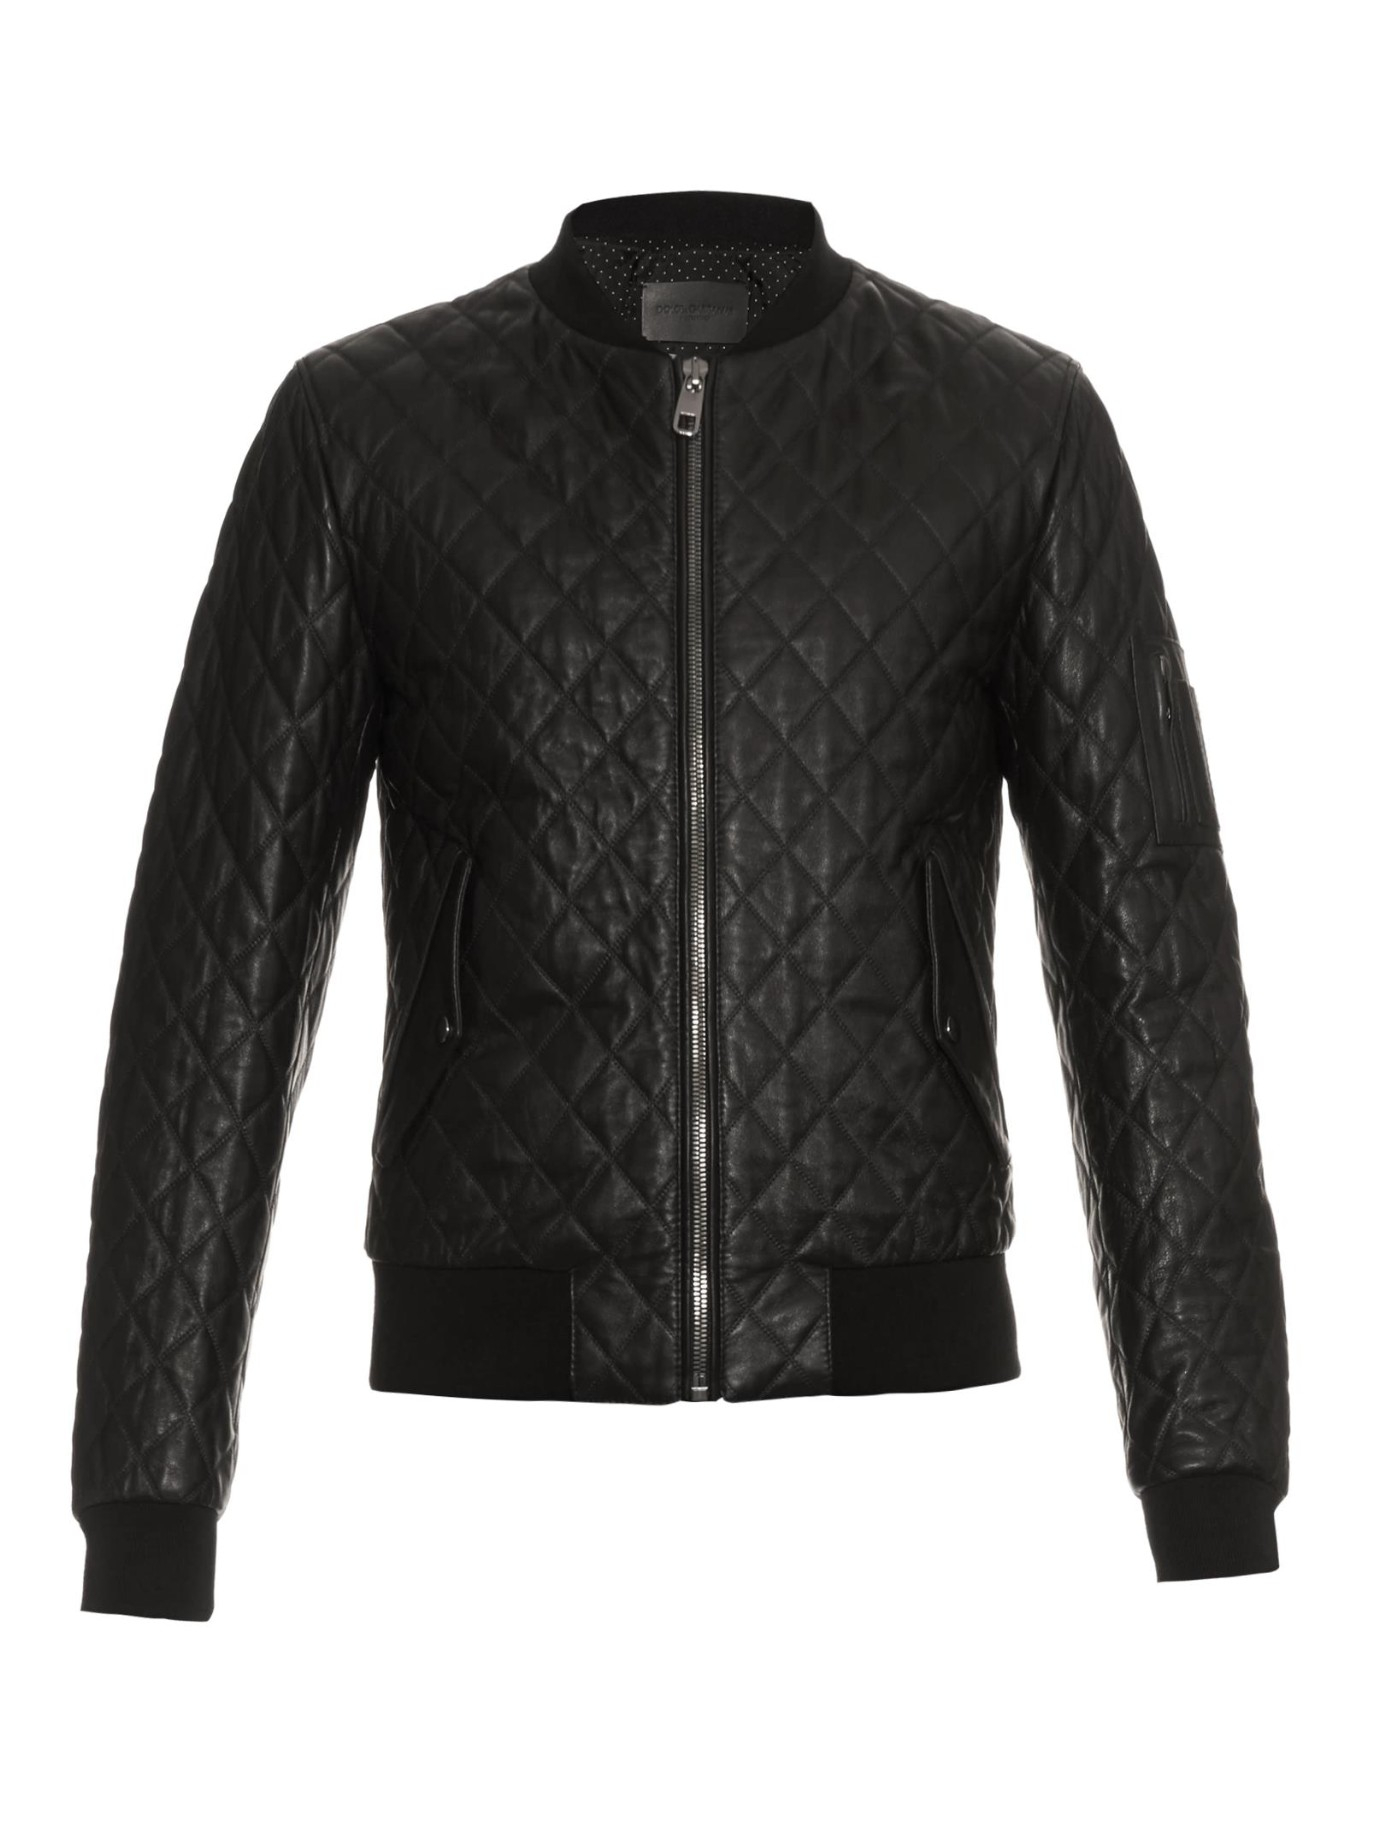 Dolce & gabbana Quilted Leather Bomber Jacket in Black for Men | Lyst